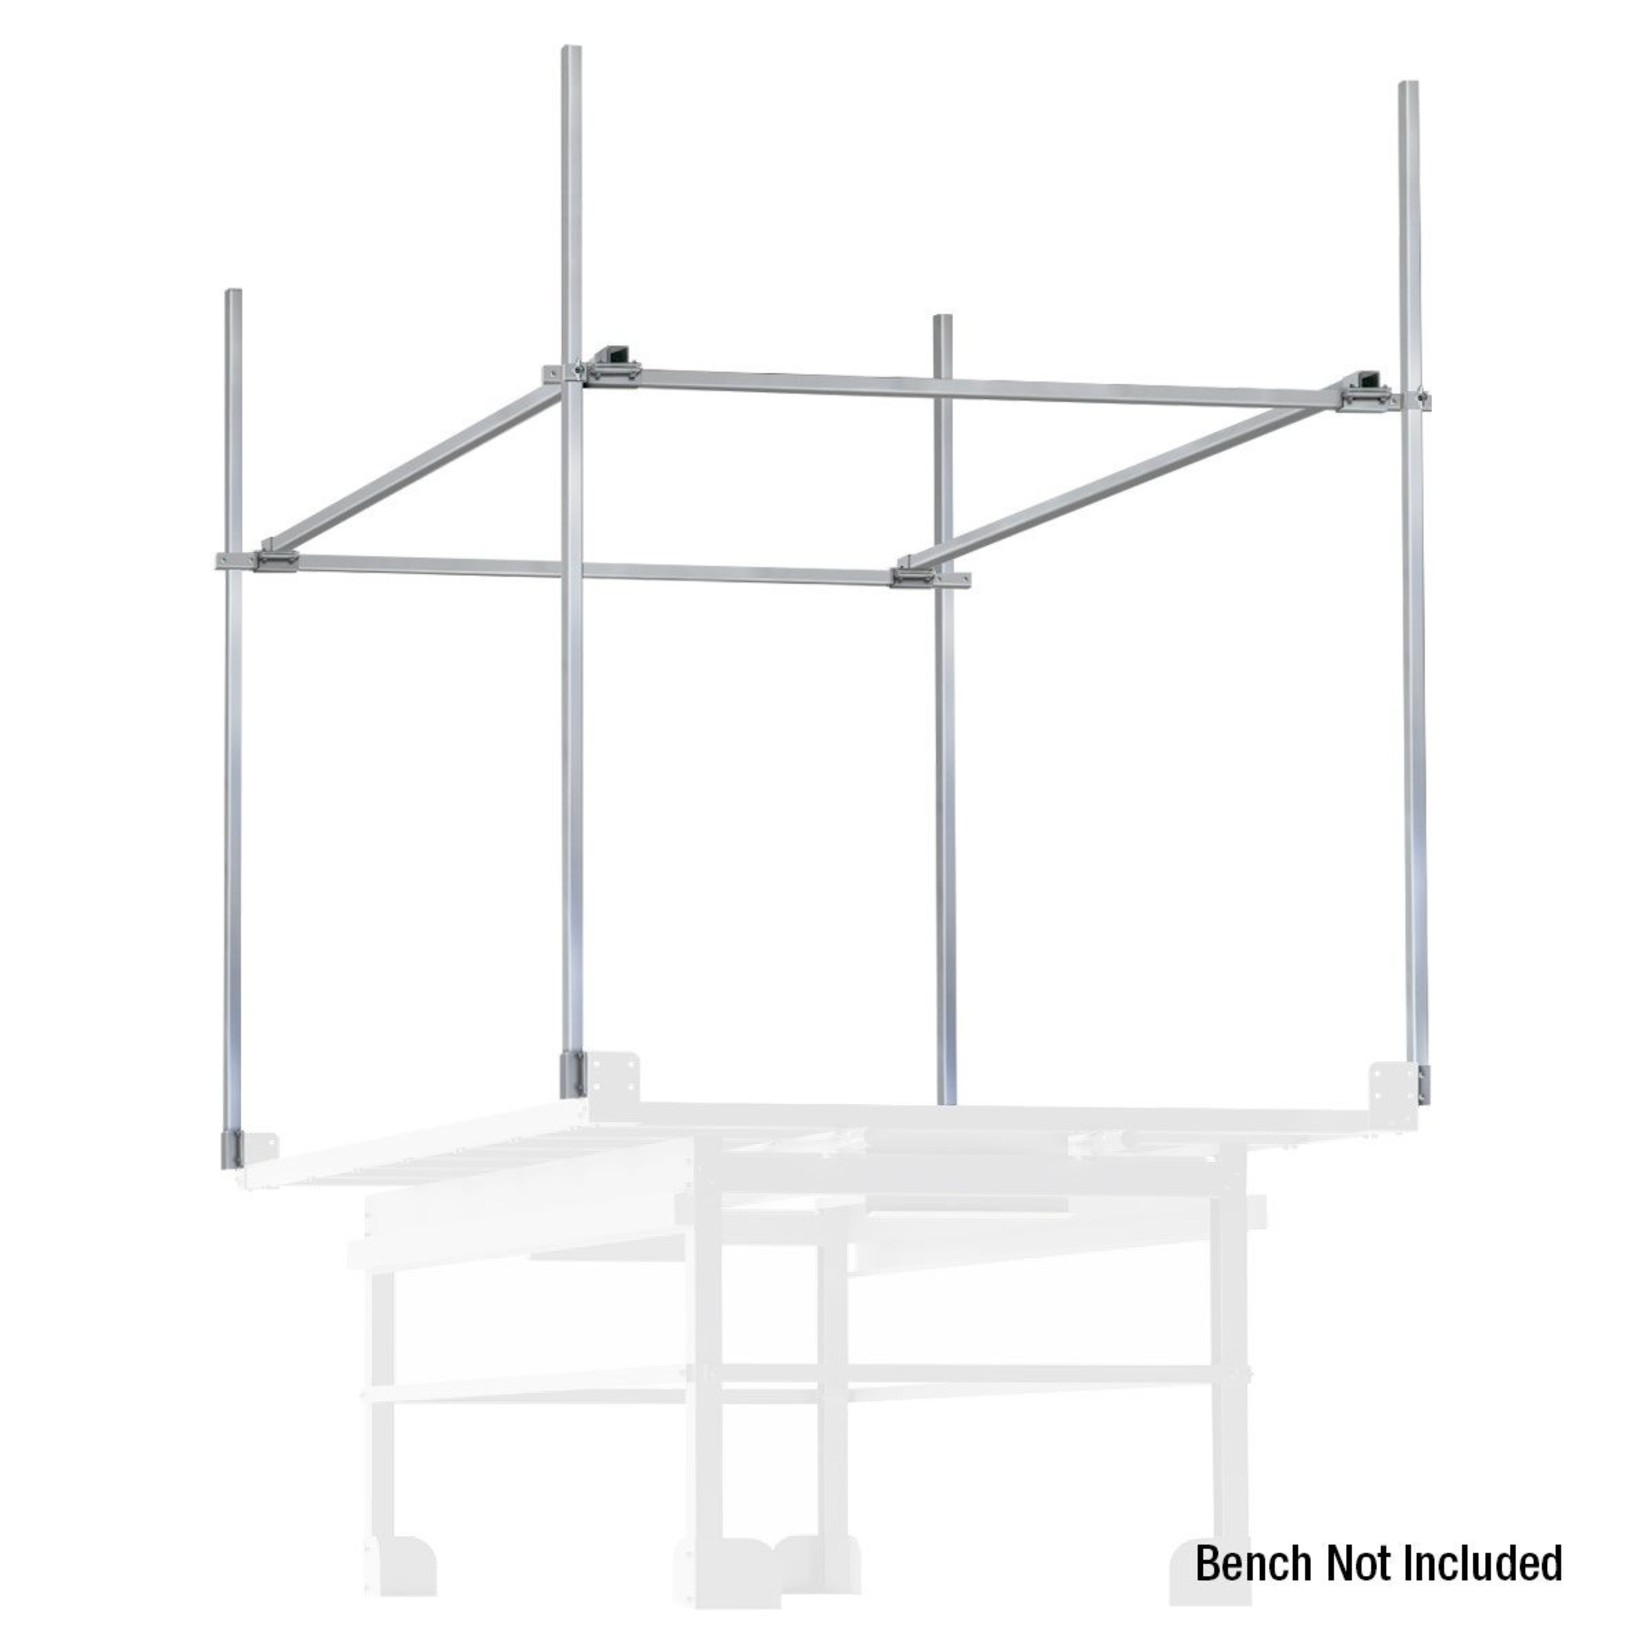 Trellis Netting Support System 4' x 8' for XTrays Bench